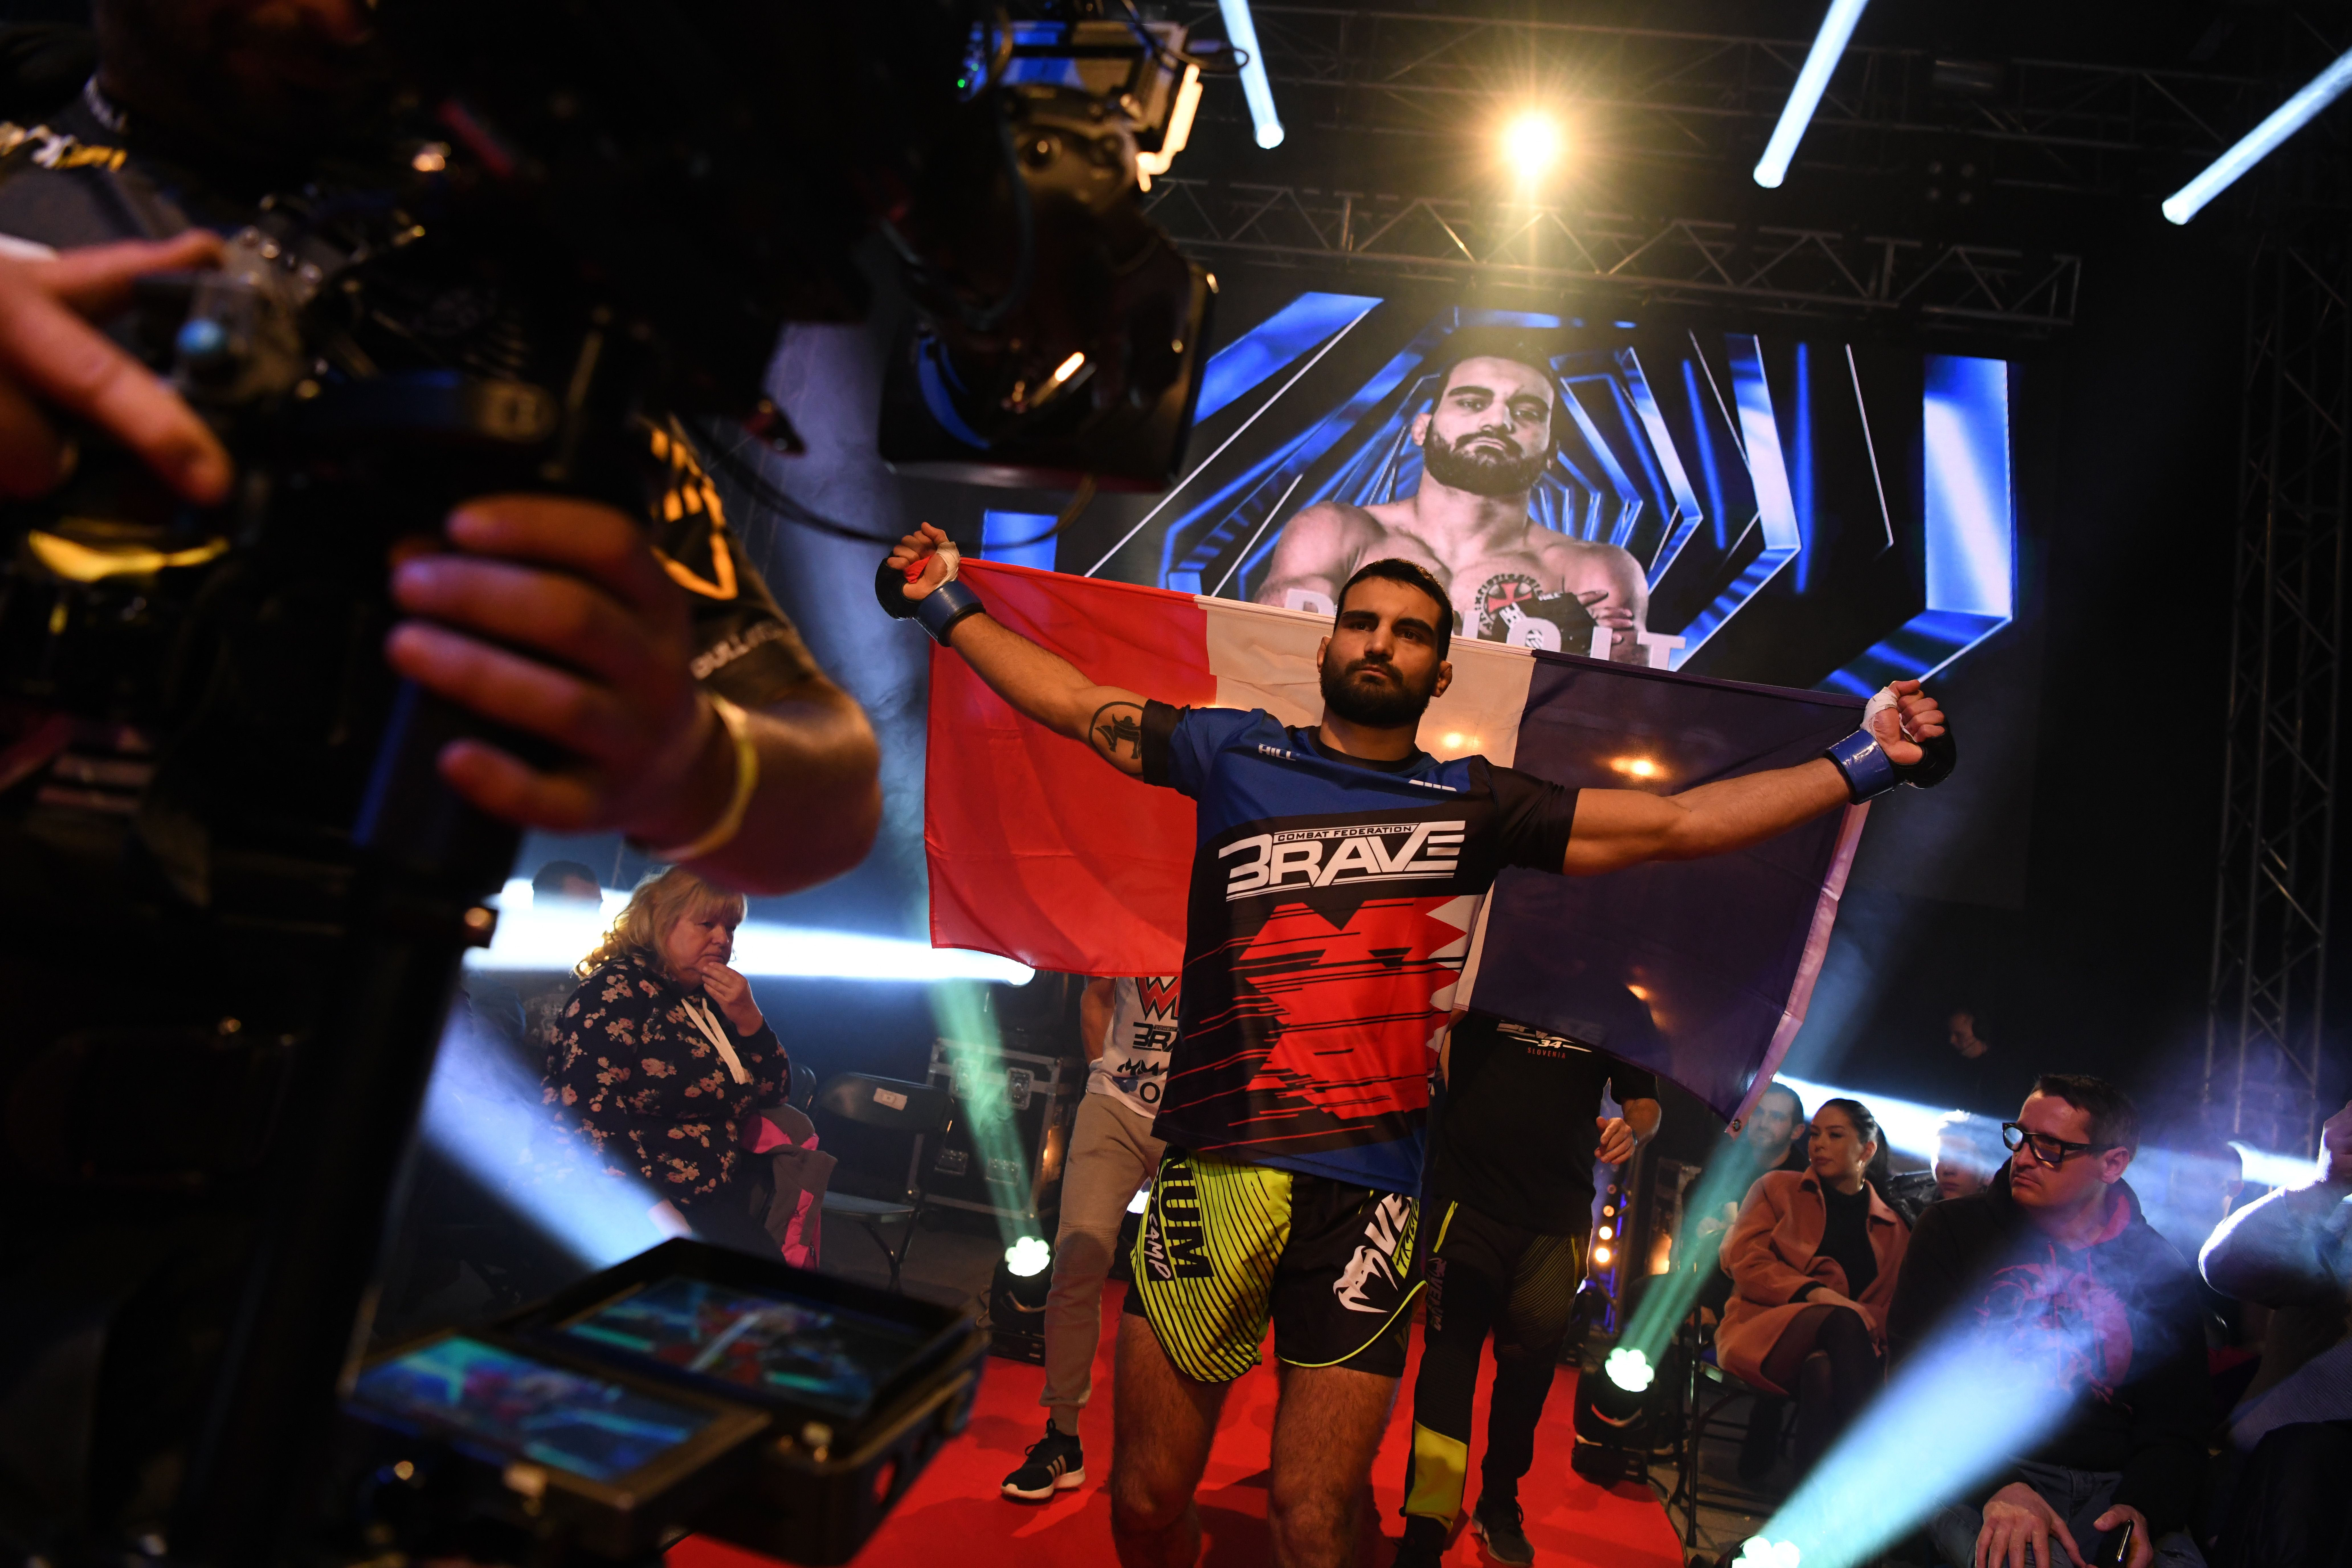 BRAVE CF's Benoit St. Denis special forces' background forged him to MMA -